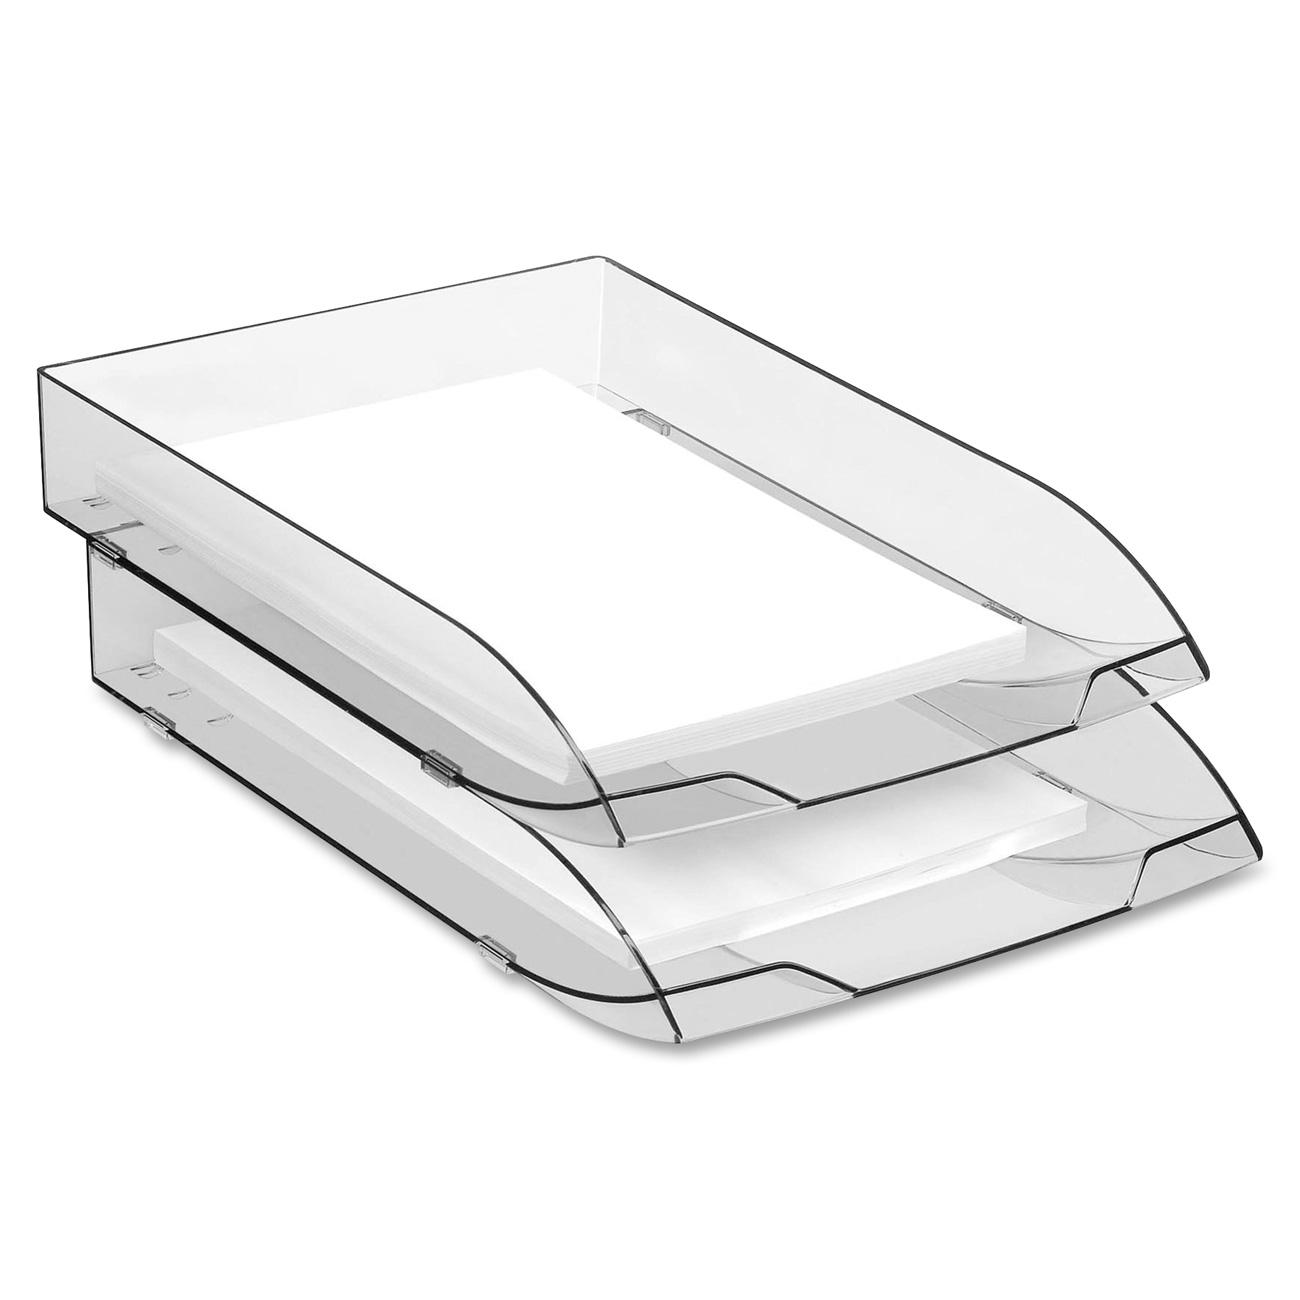 CEP Ice Desk Accessories Stackable Letter Tray by CEP